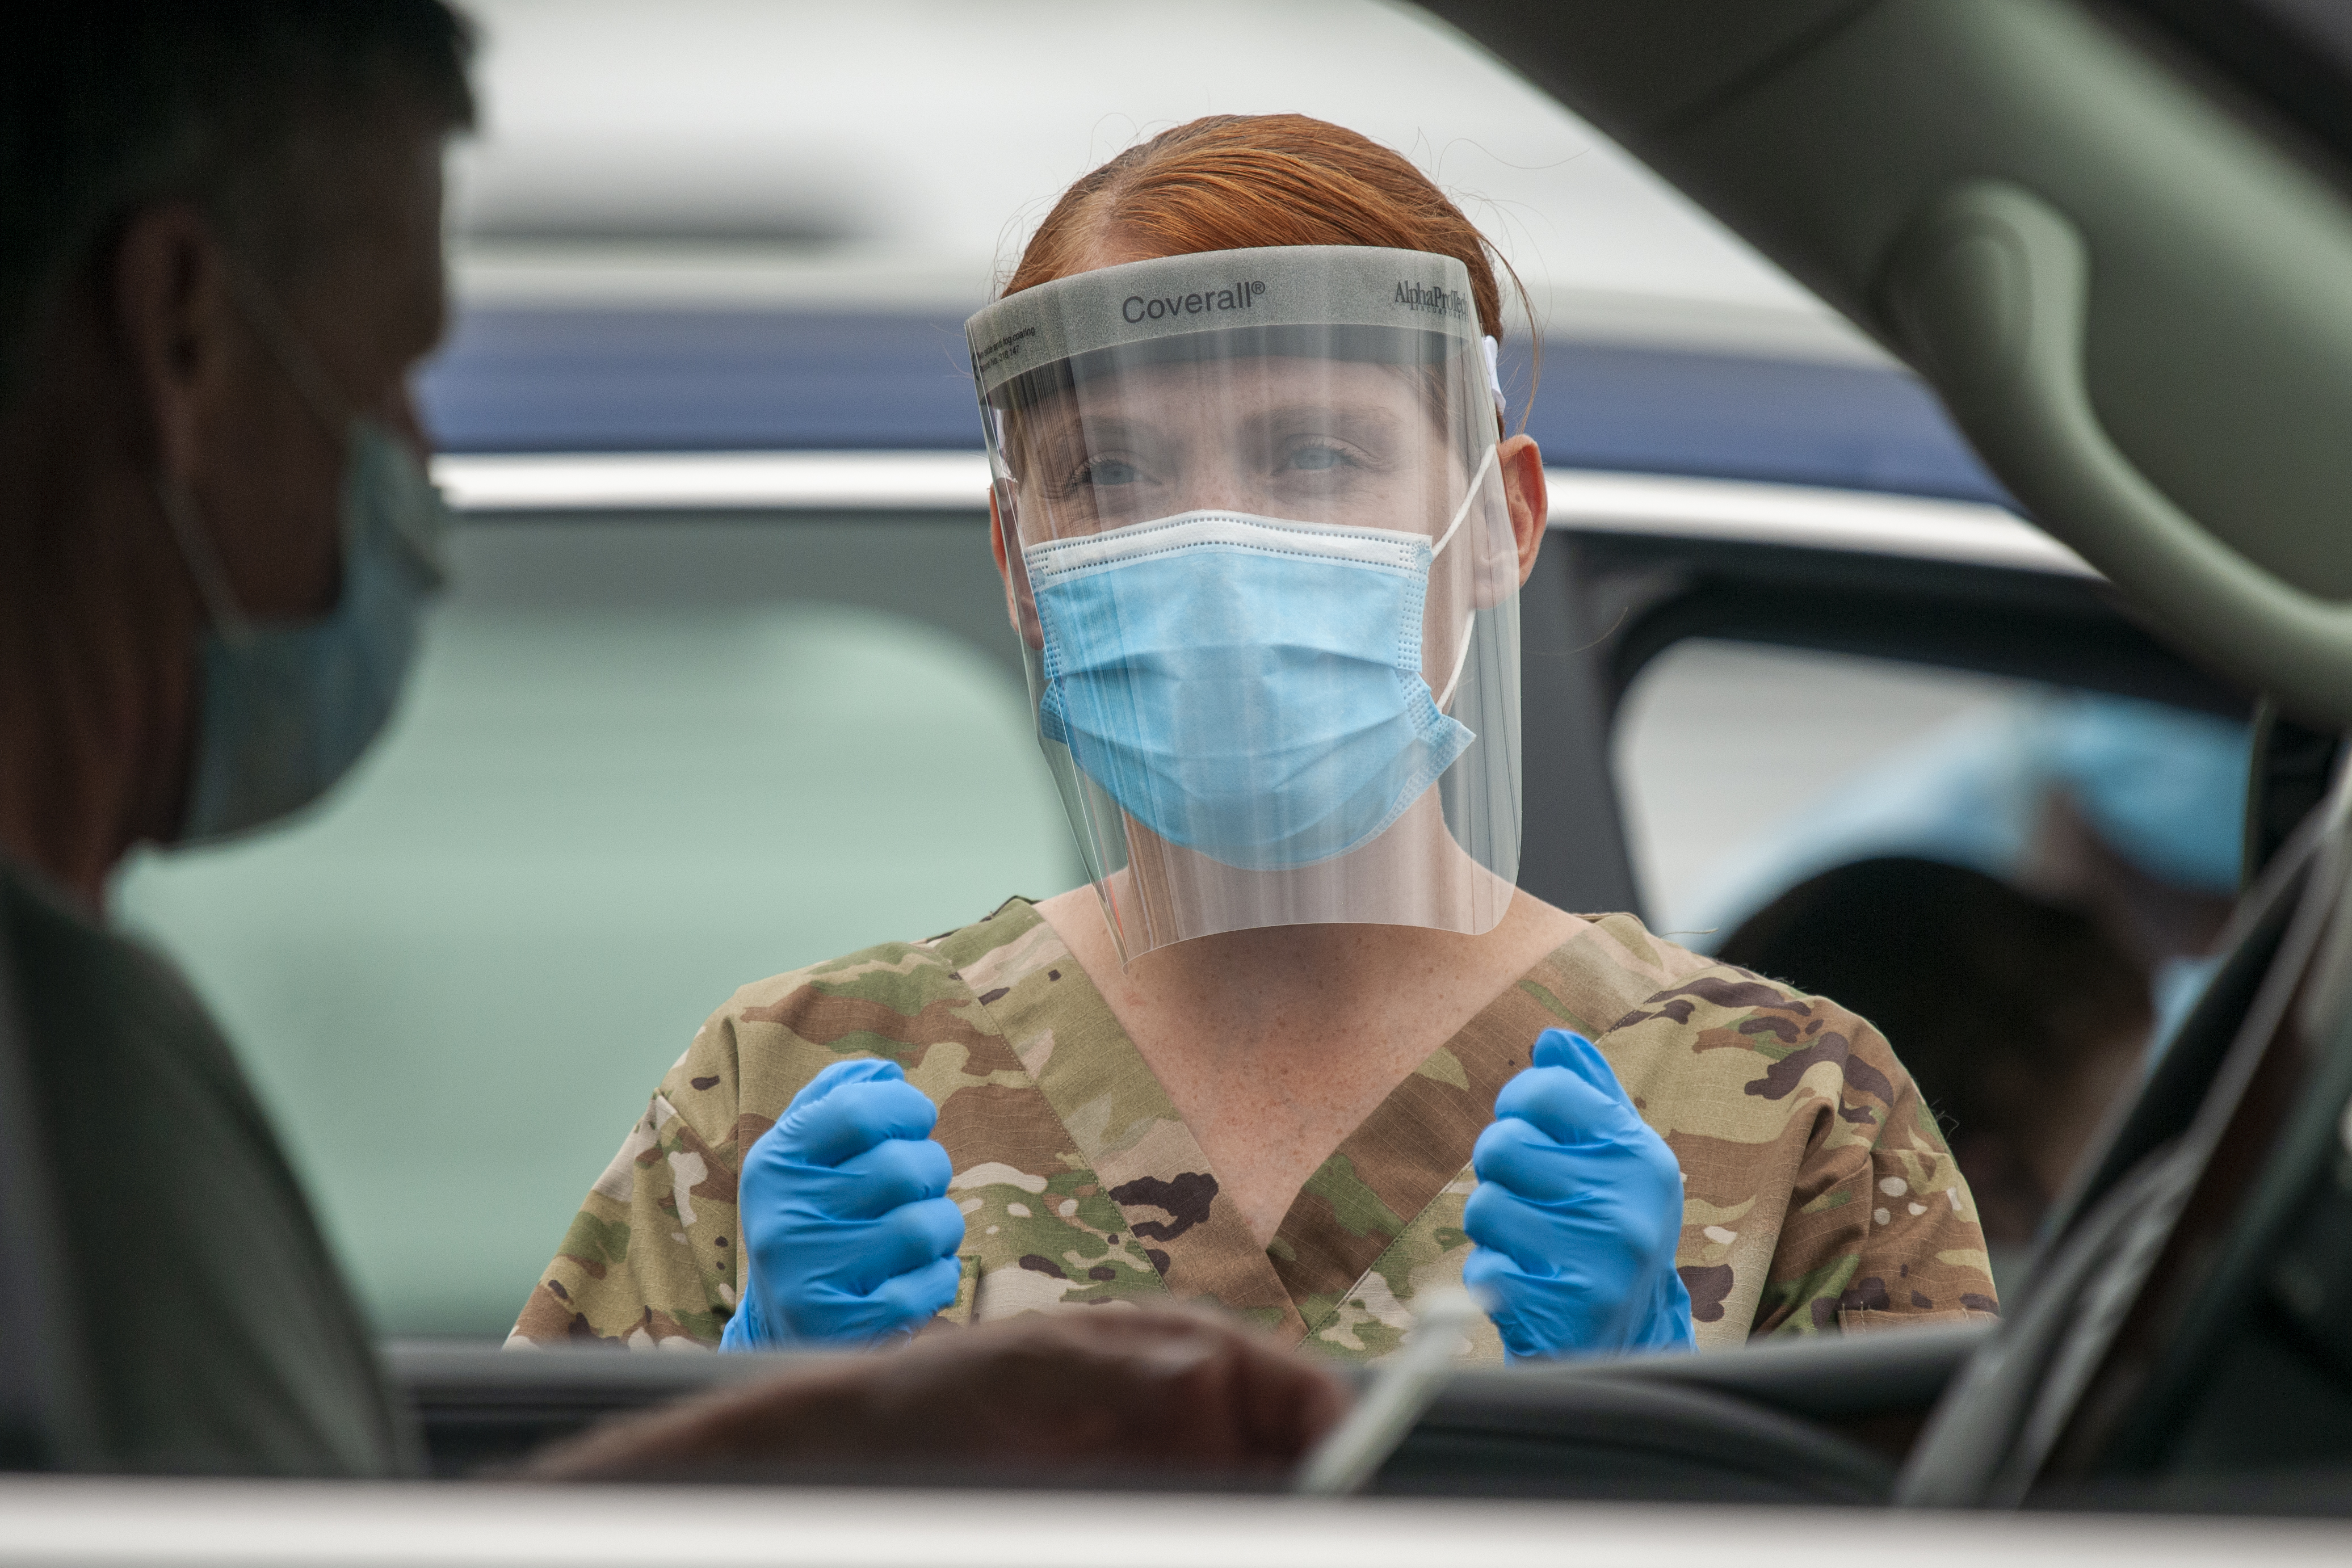 A clinician prepares a patient in car for COVID-19 test